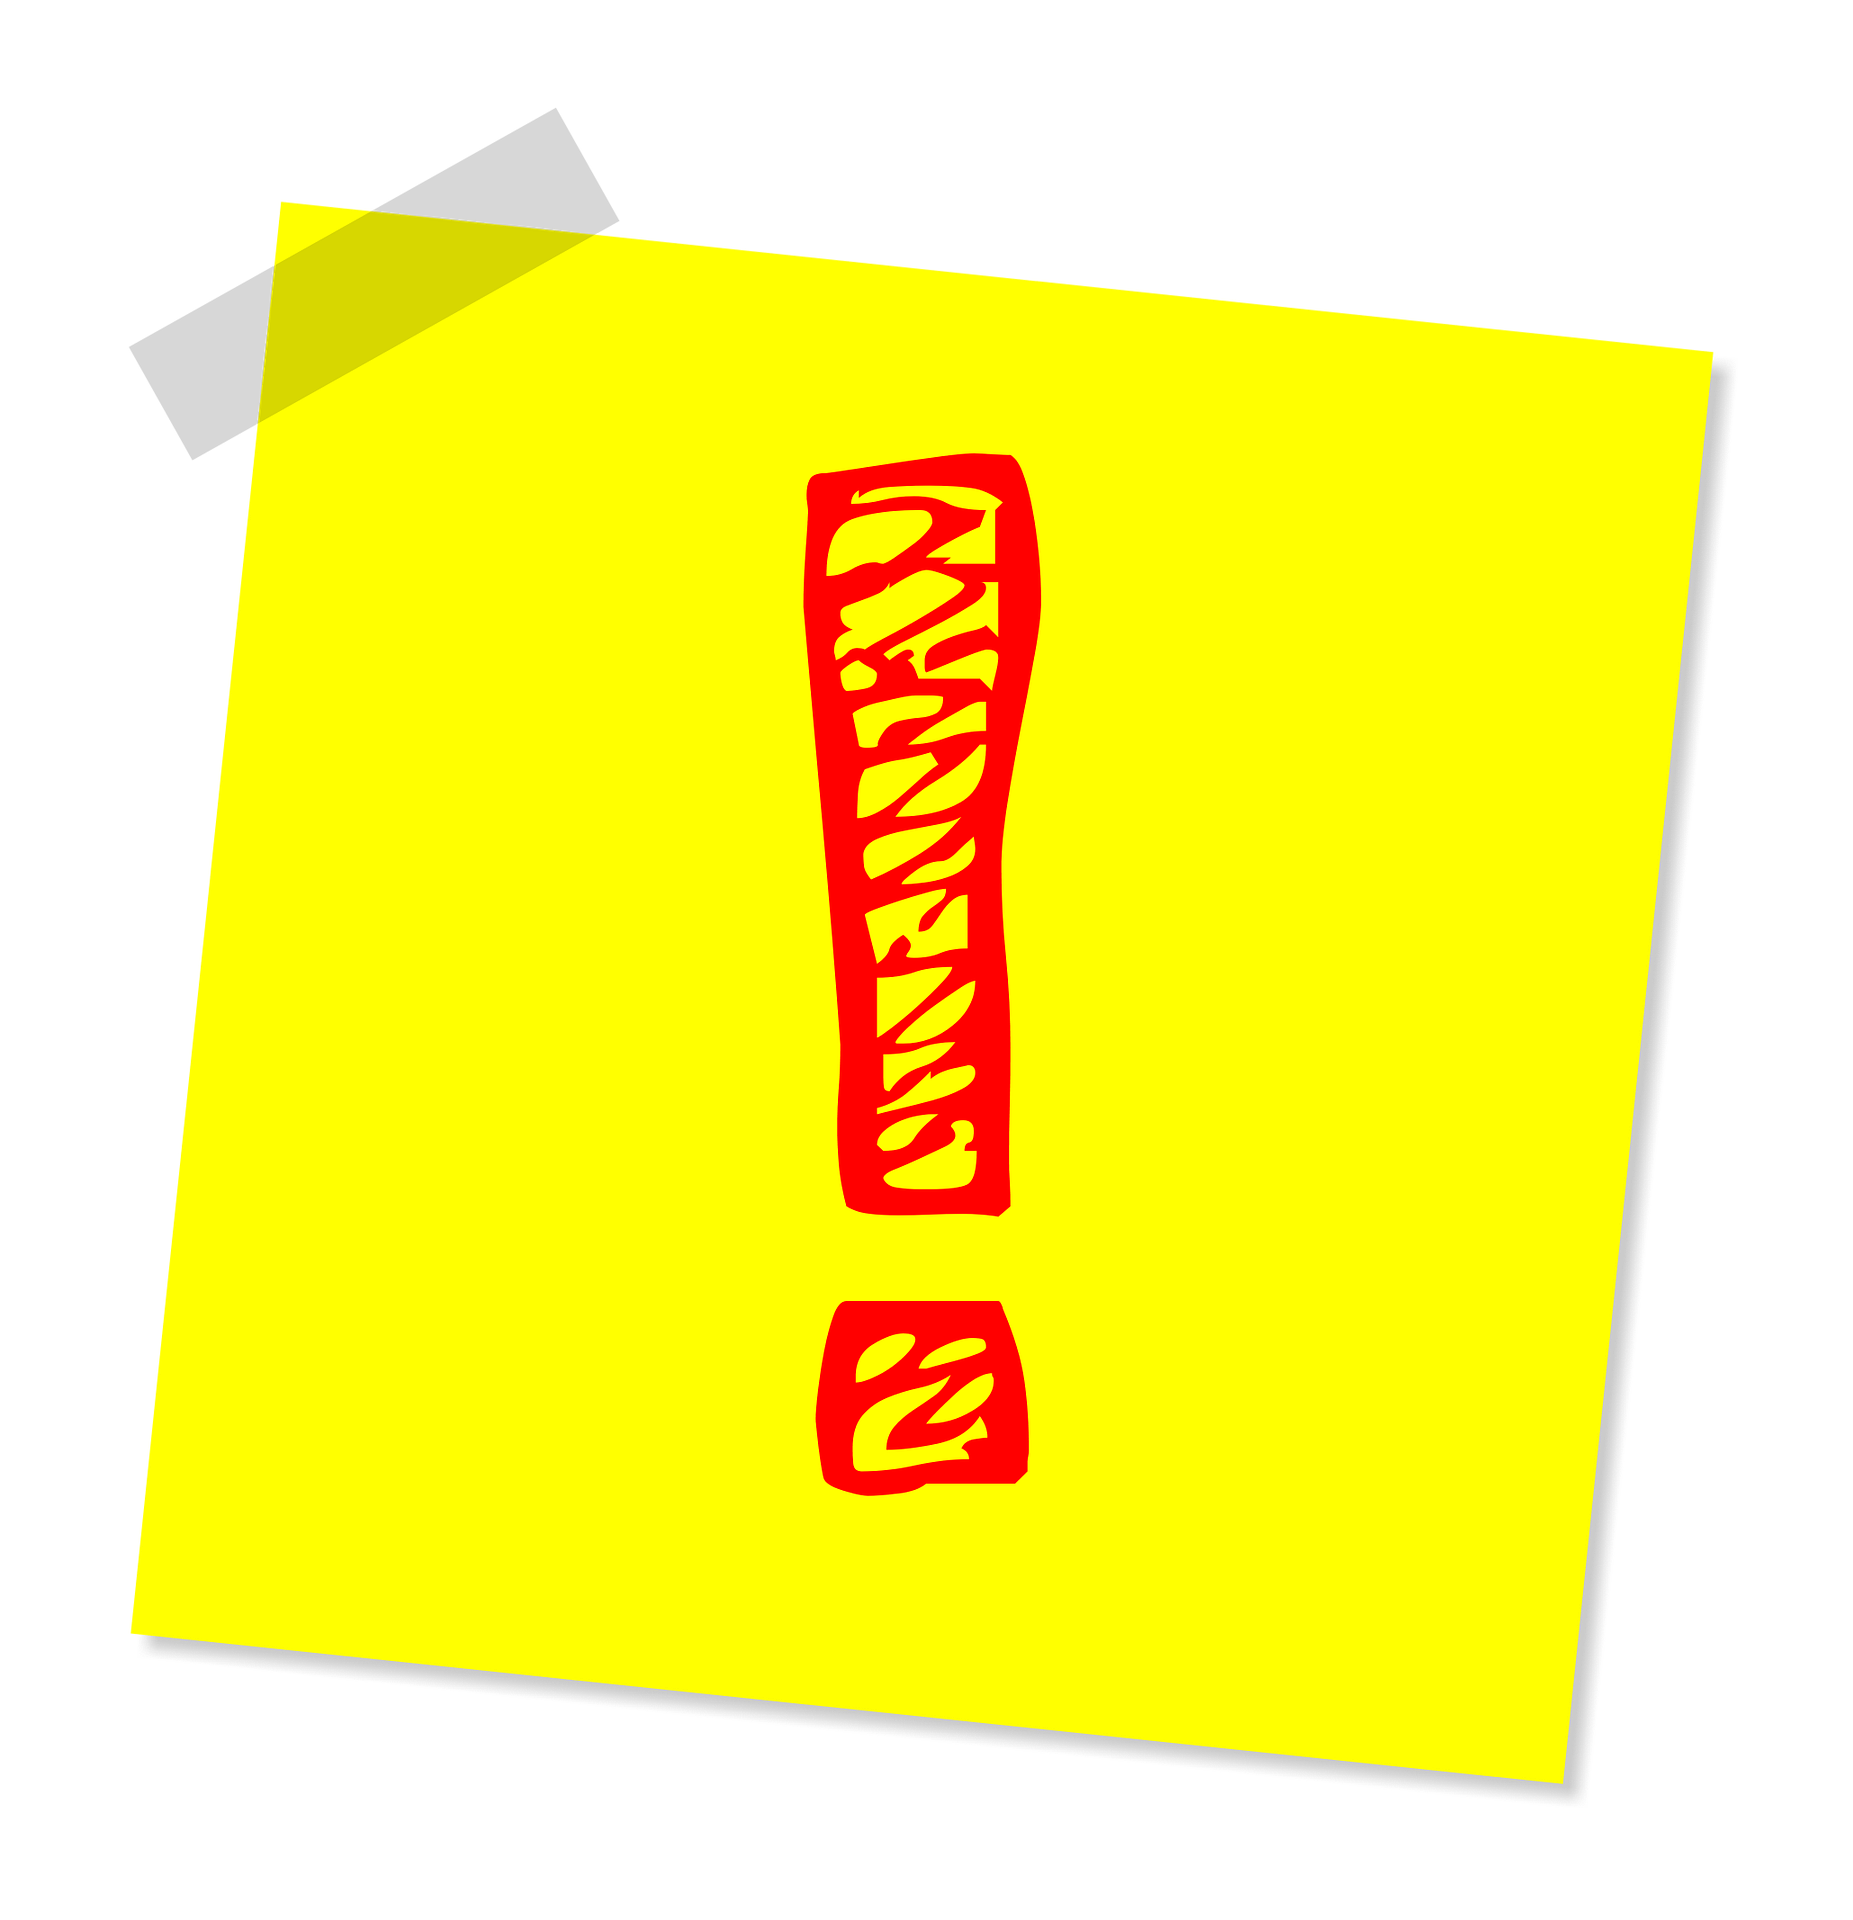 Yellow post it note with red exclamation mark drawn on it.